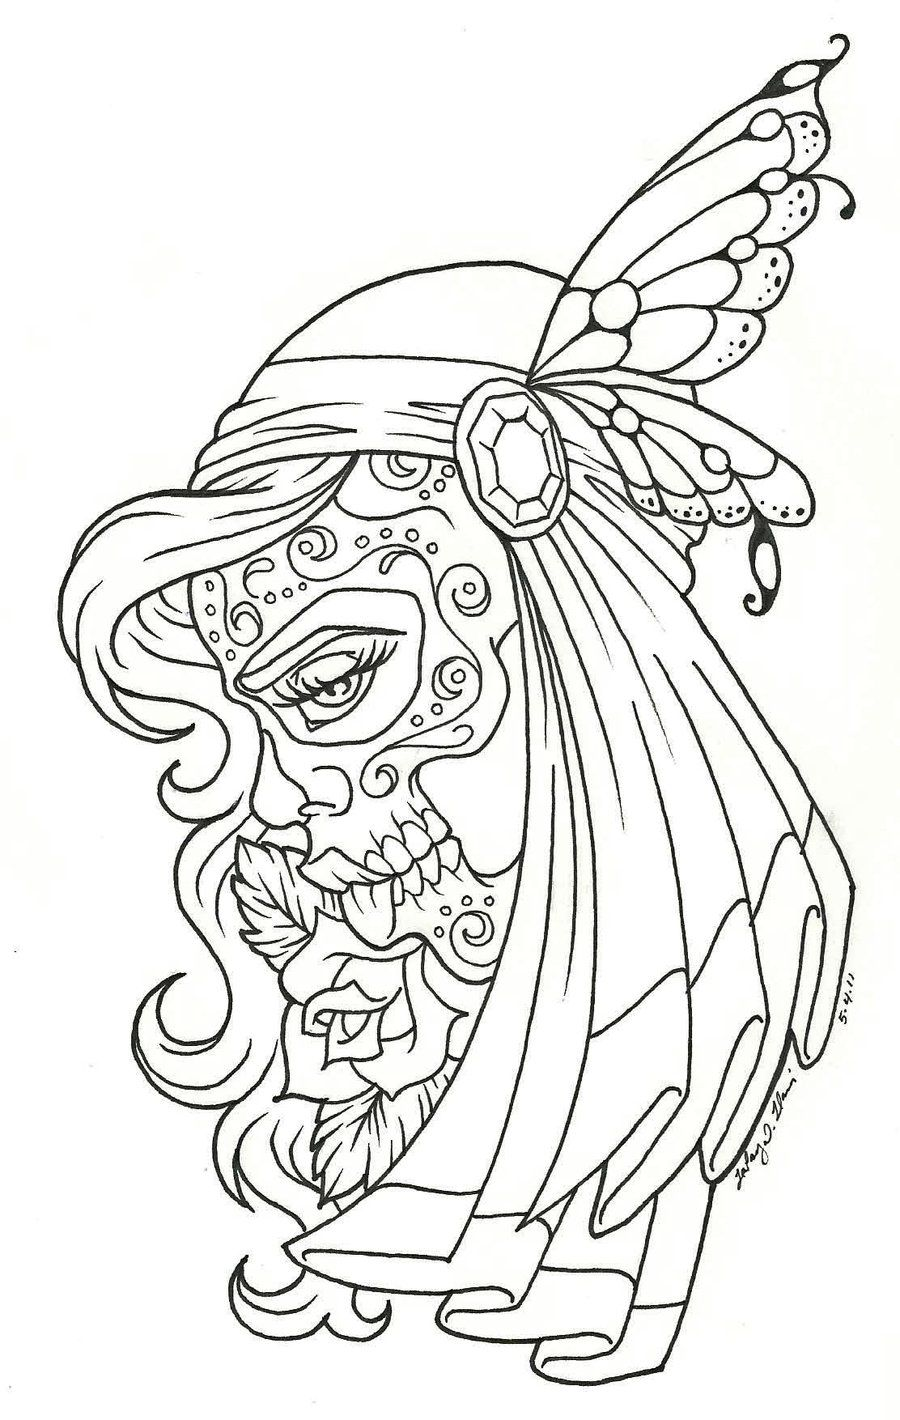 day of the dead children day of the dead coloring page coloring pages sugar skull tattoossugar - Sugar Skull Tattoo Coloring Pages